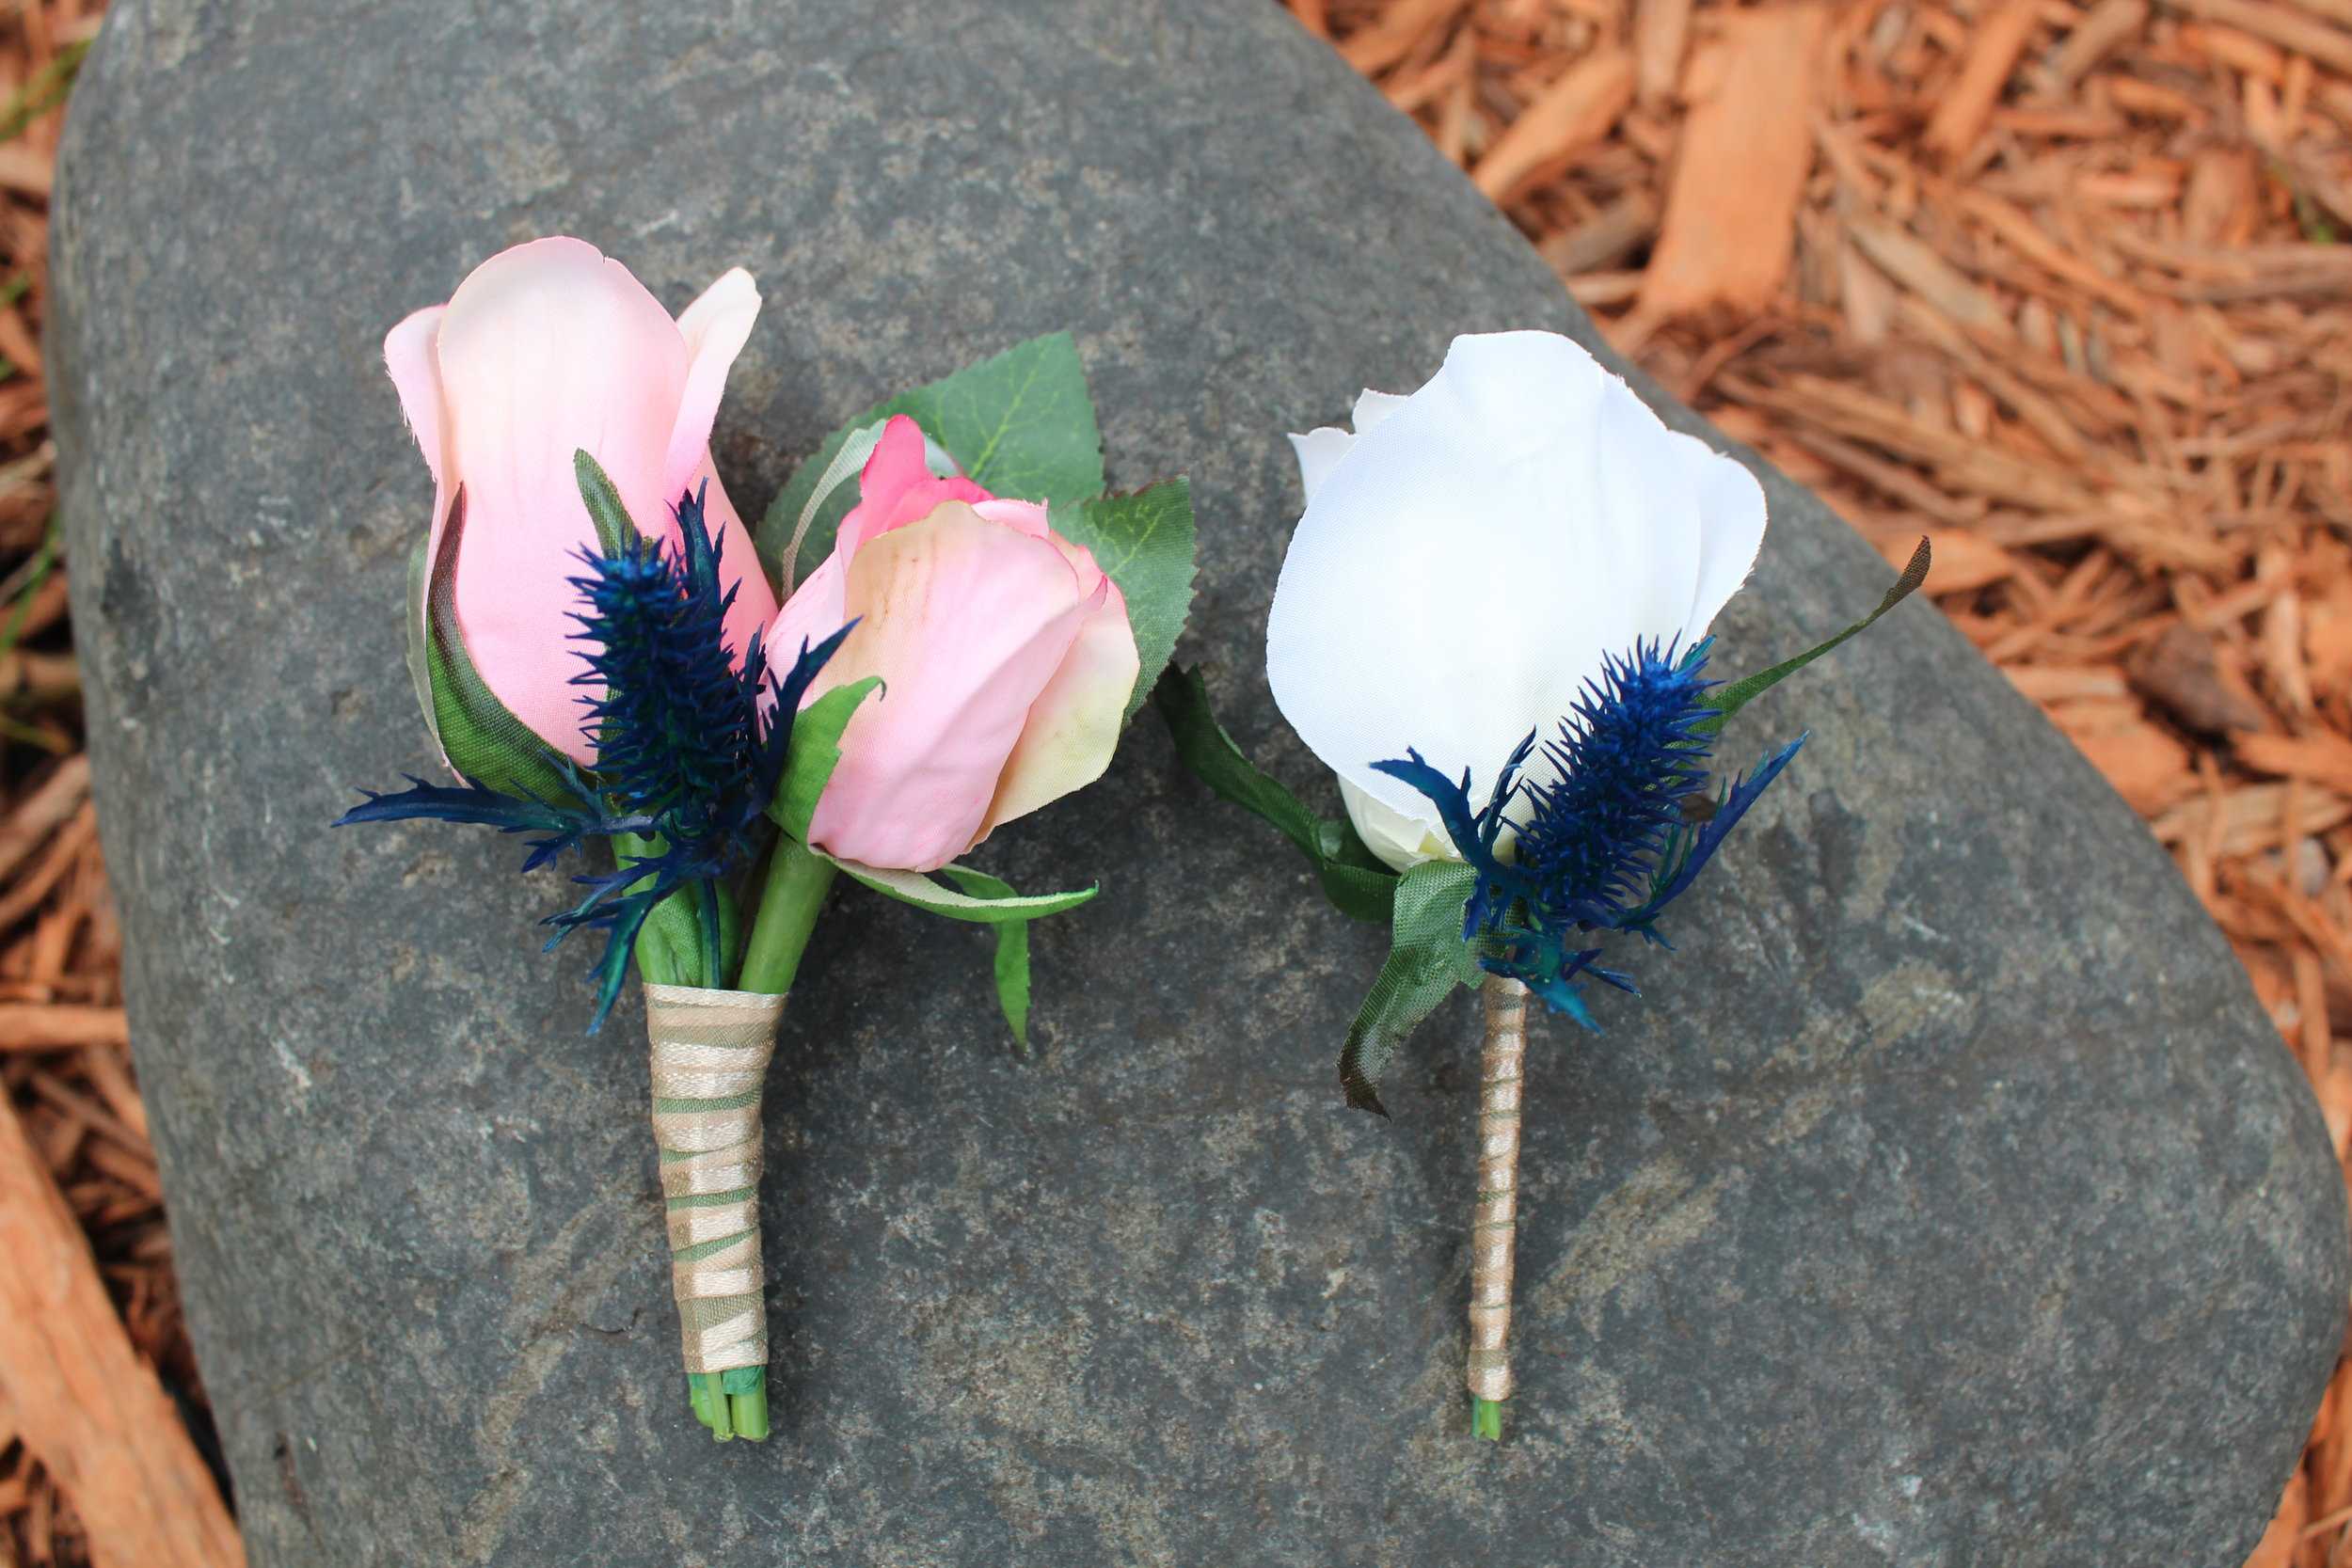 minneapolis-boutonniere-corsages-silk-flower-arrangement.jpg